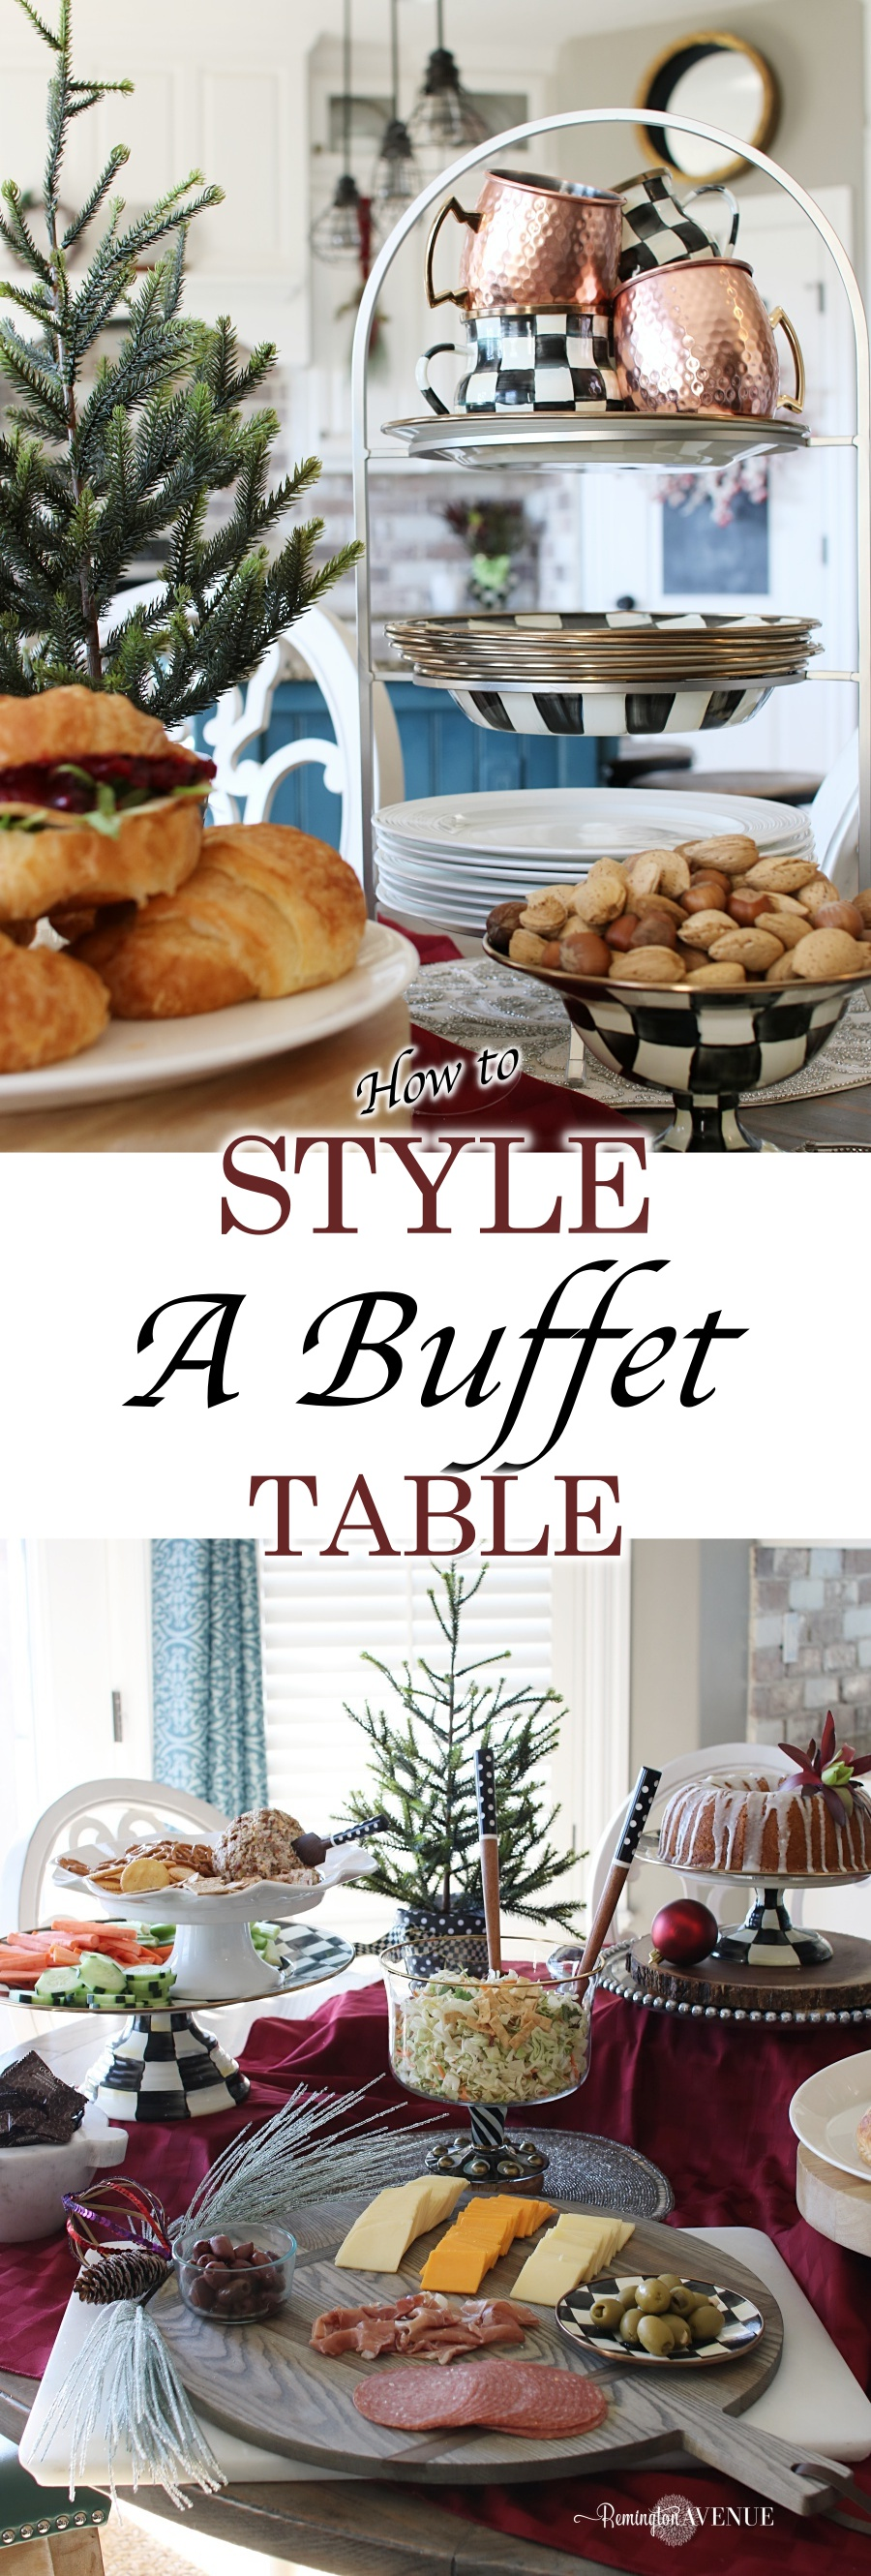 Tips for organizing and styling a buffet table 1